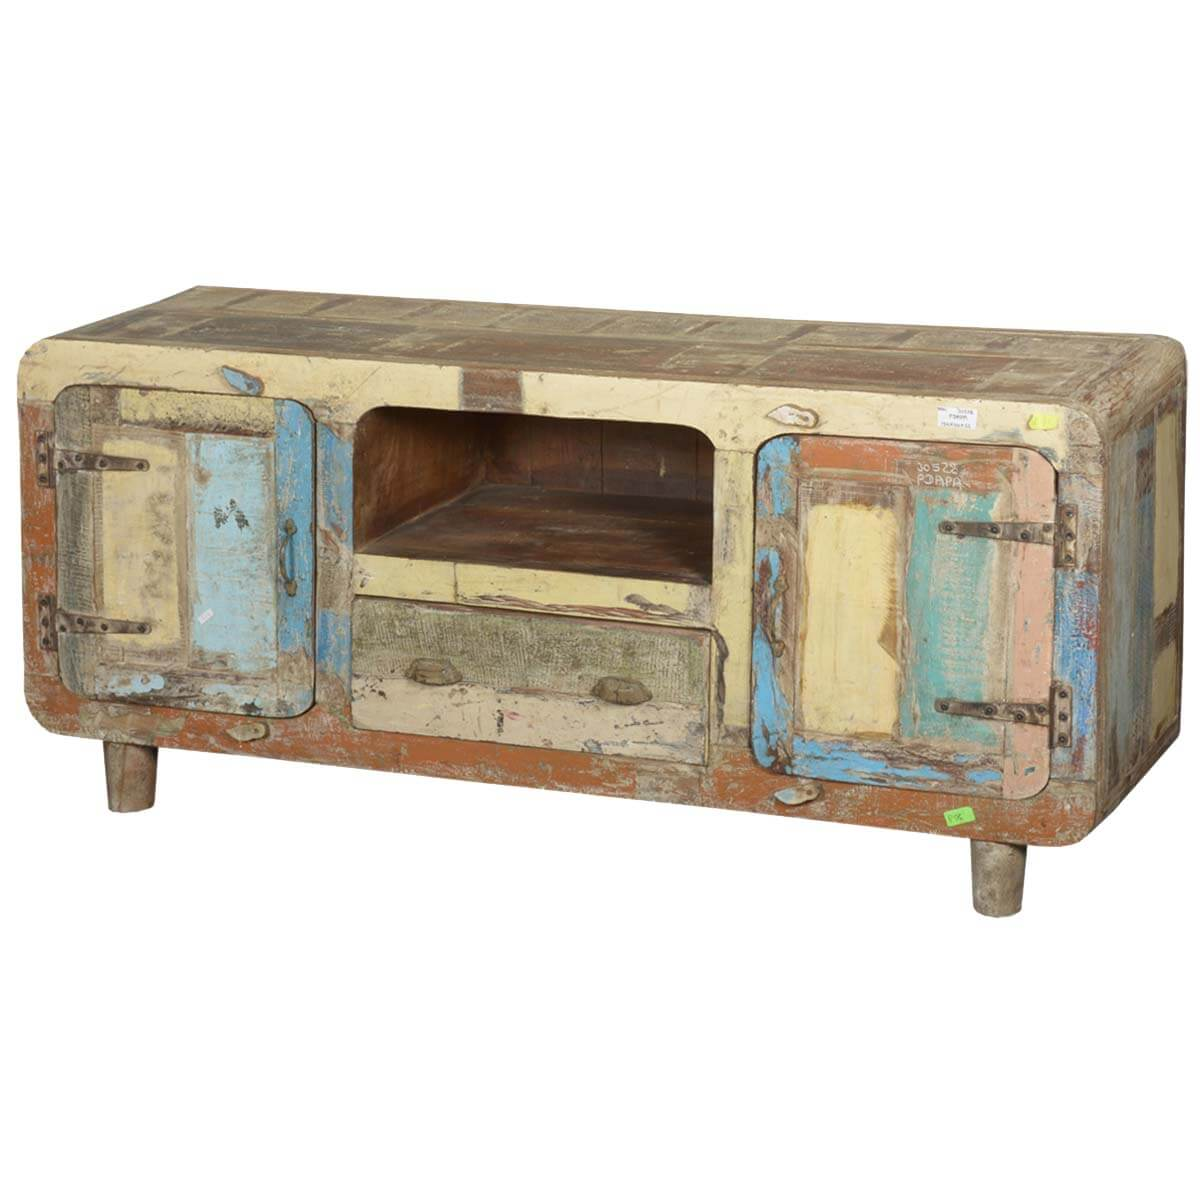 Wood Media Console Furniture ~ Rustic reclaimed wood furniture retro patchwork tv stand